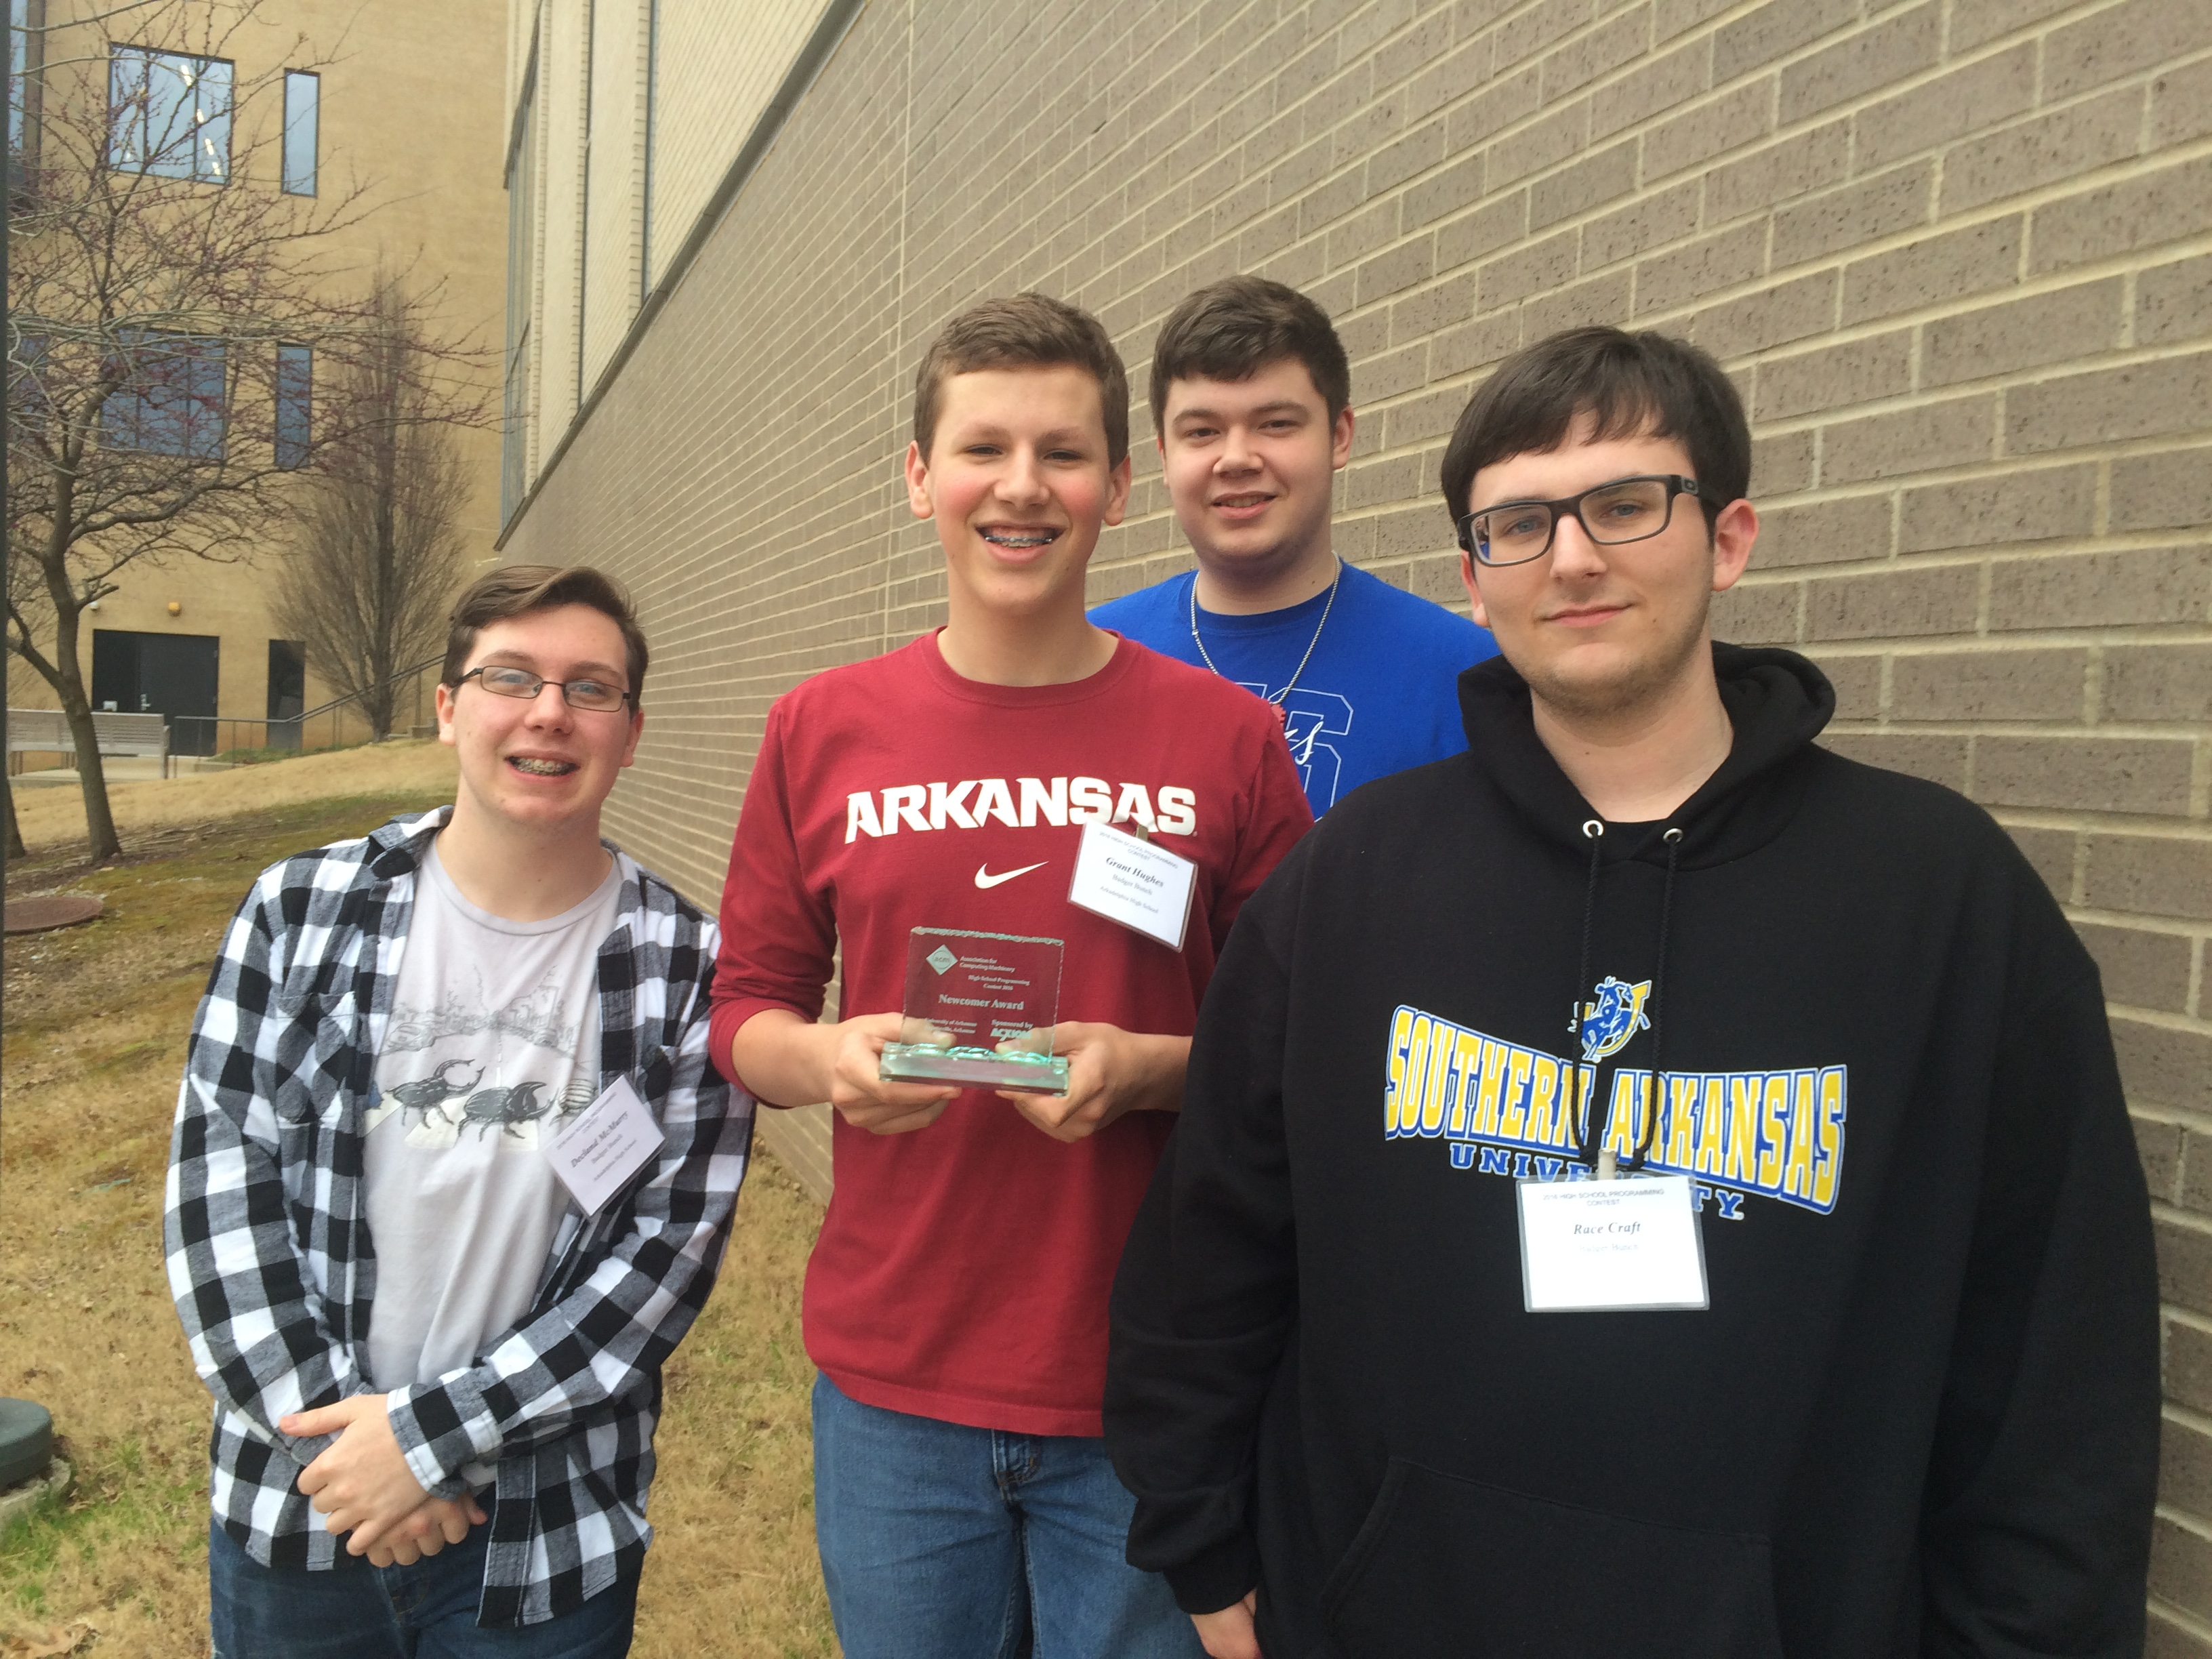 AP Computer Science students place seventh at University of Arkansas Programming Contest